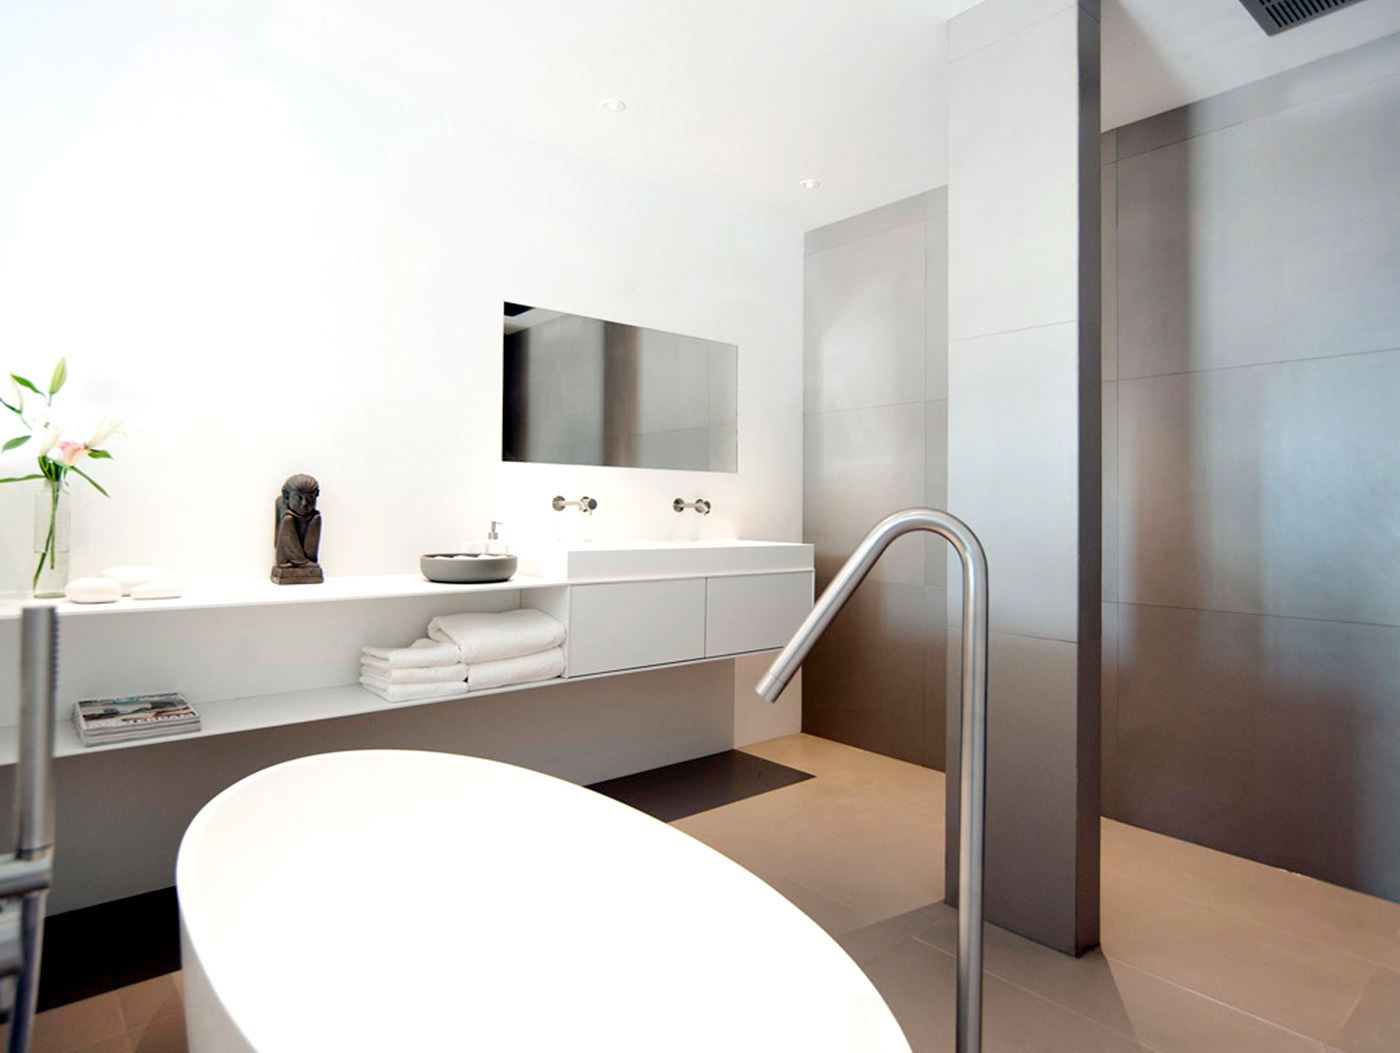 cocoon showroom in amsterdam bycocooncom modern inox stainless steel bathroom taps fittings villa designdesign hoteldesign - Stainless Steel Hotel Design